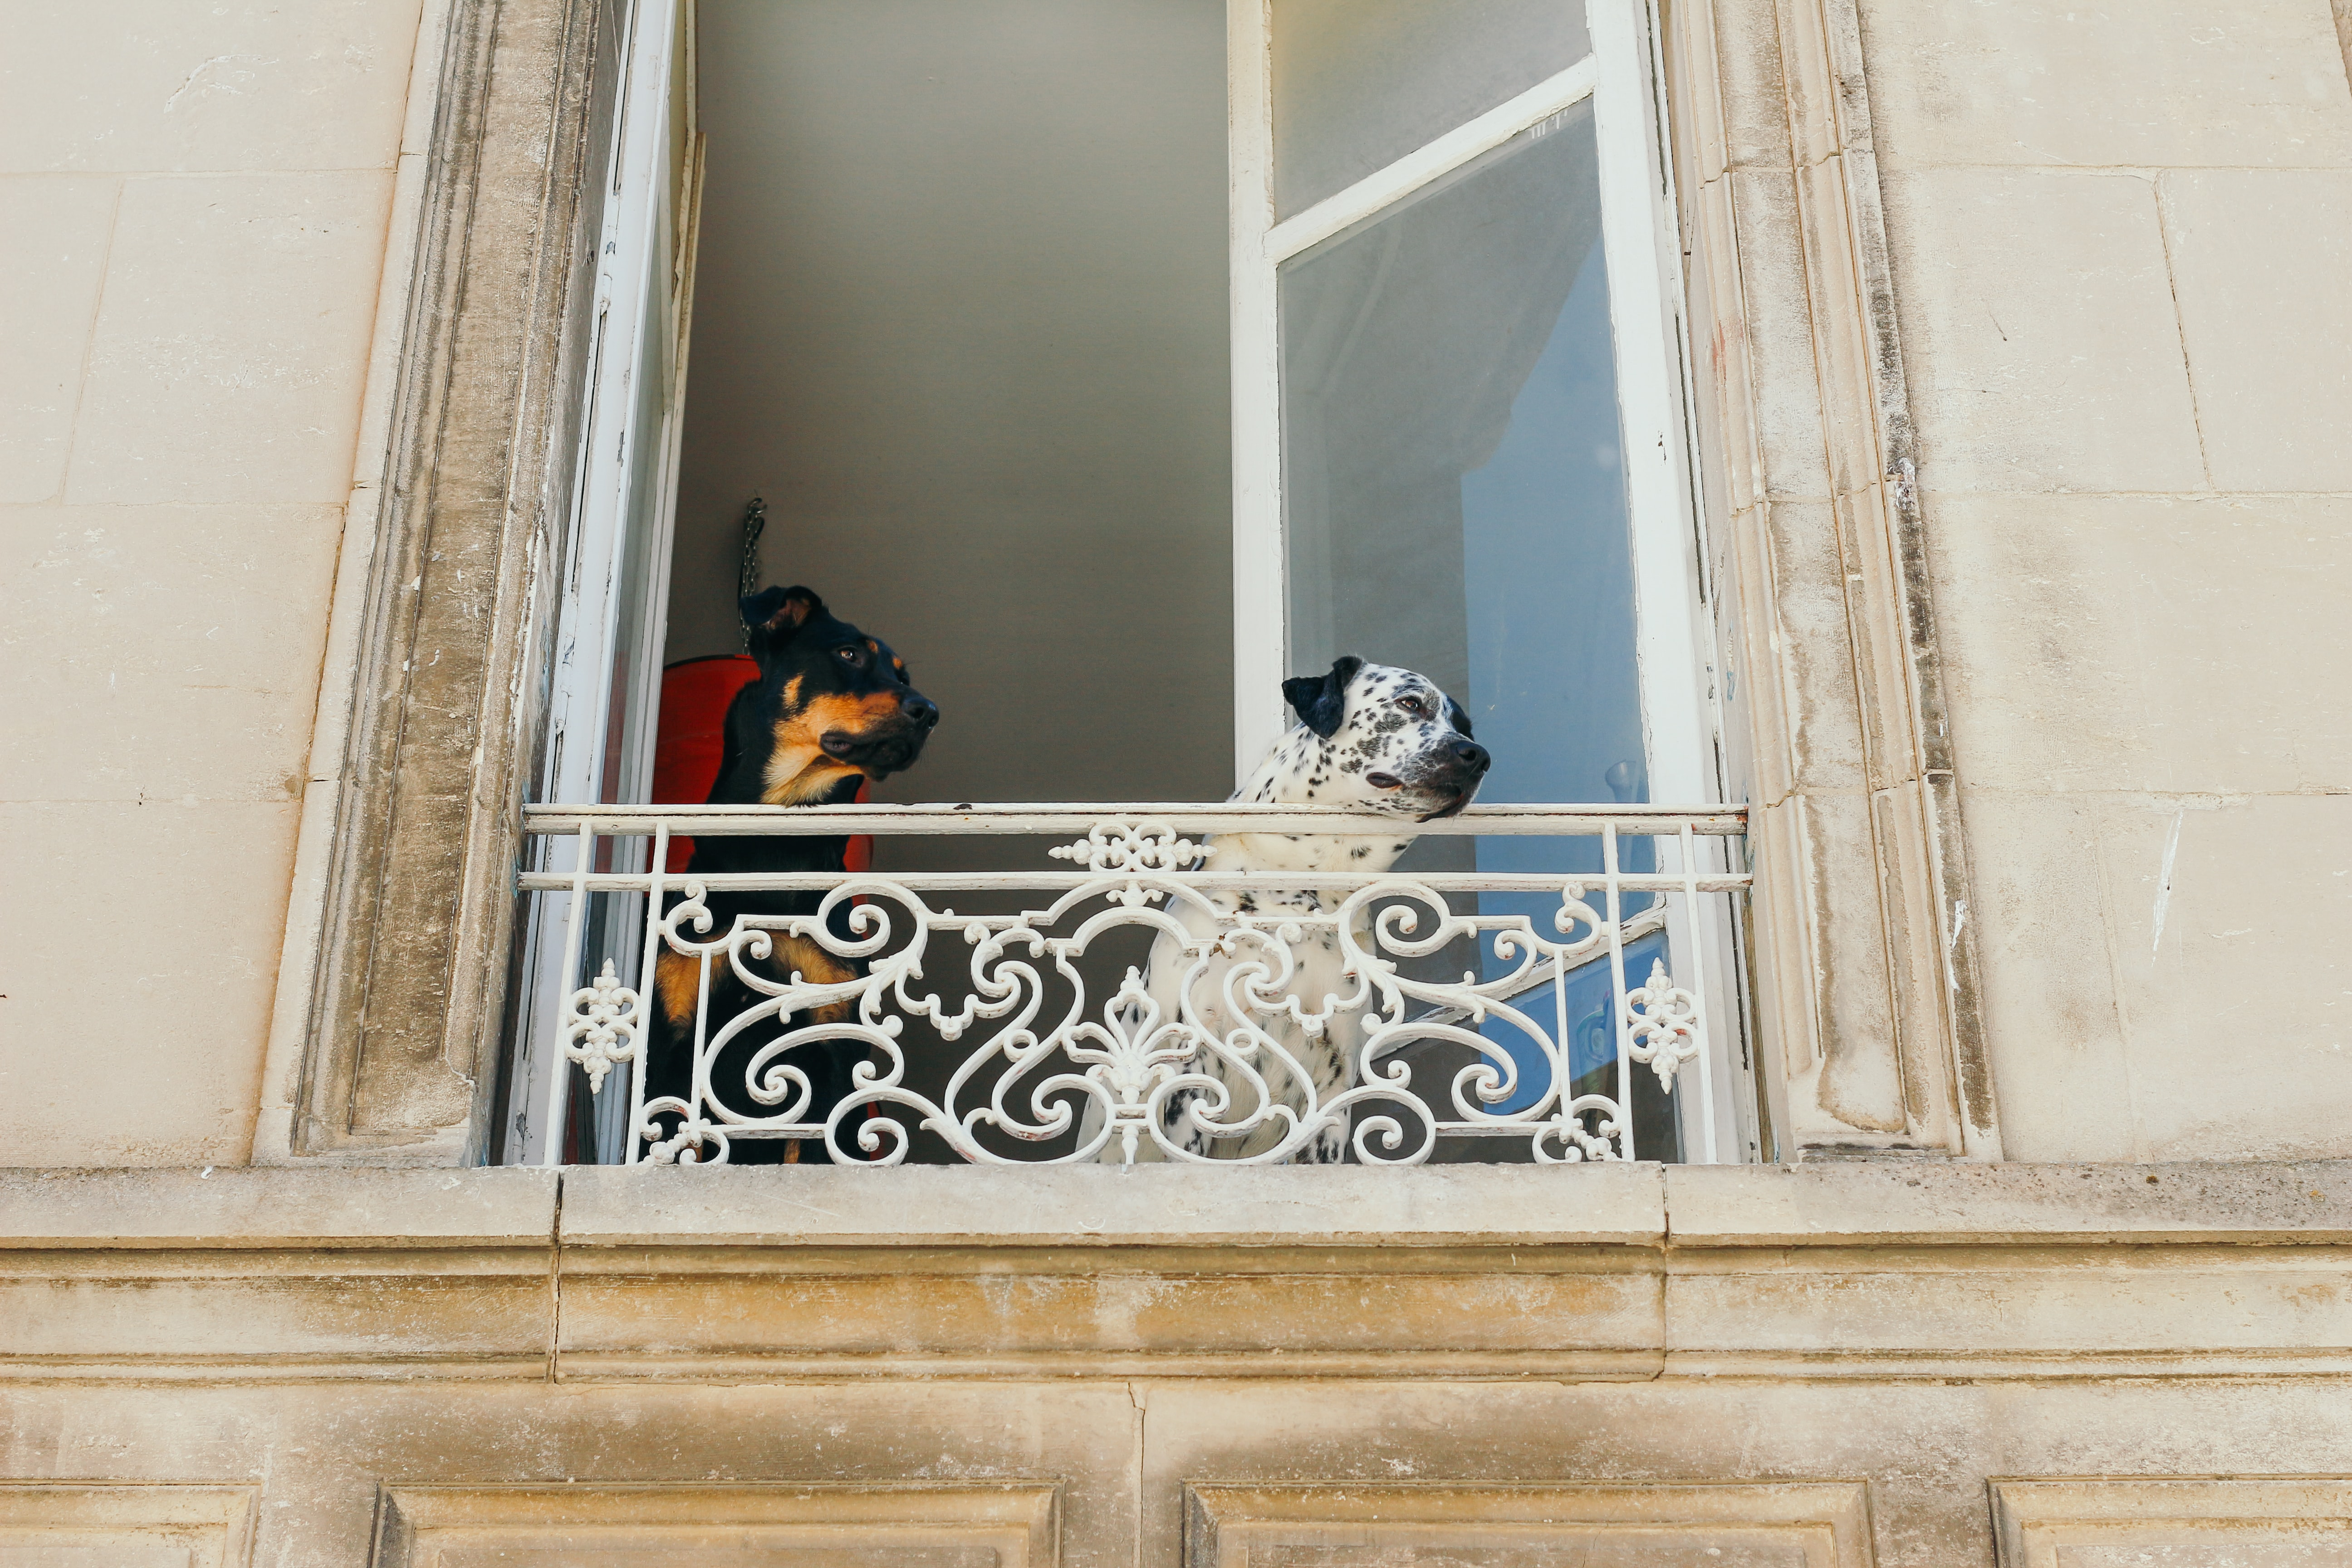 photo of two dogs near window